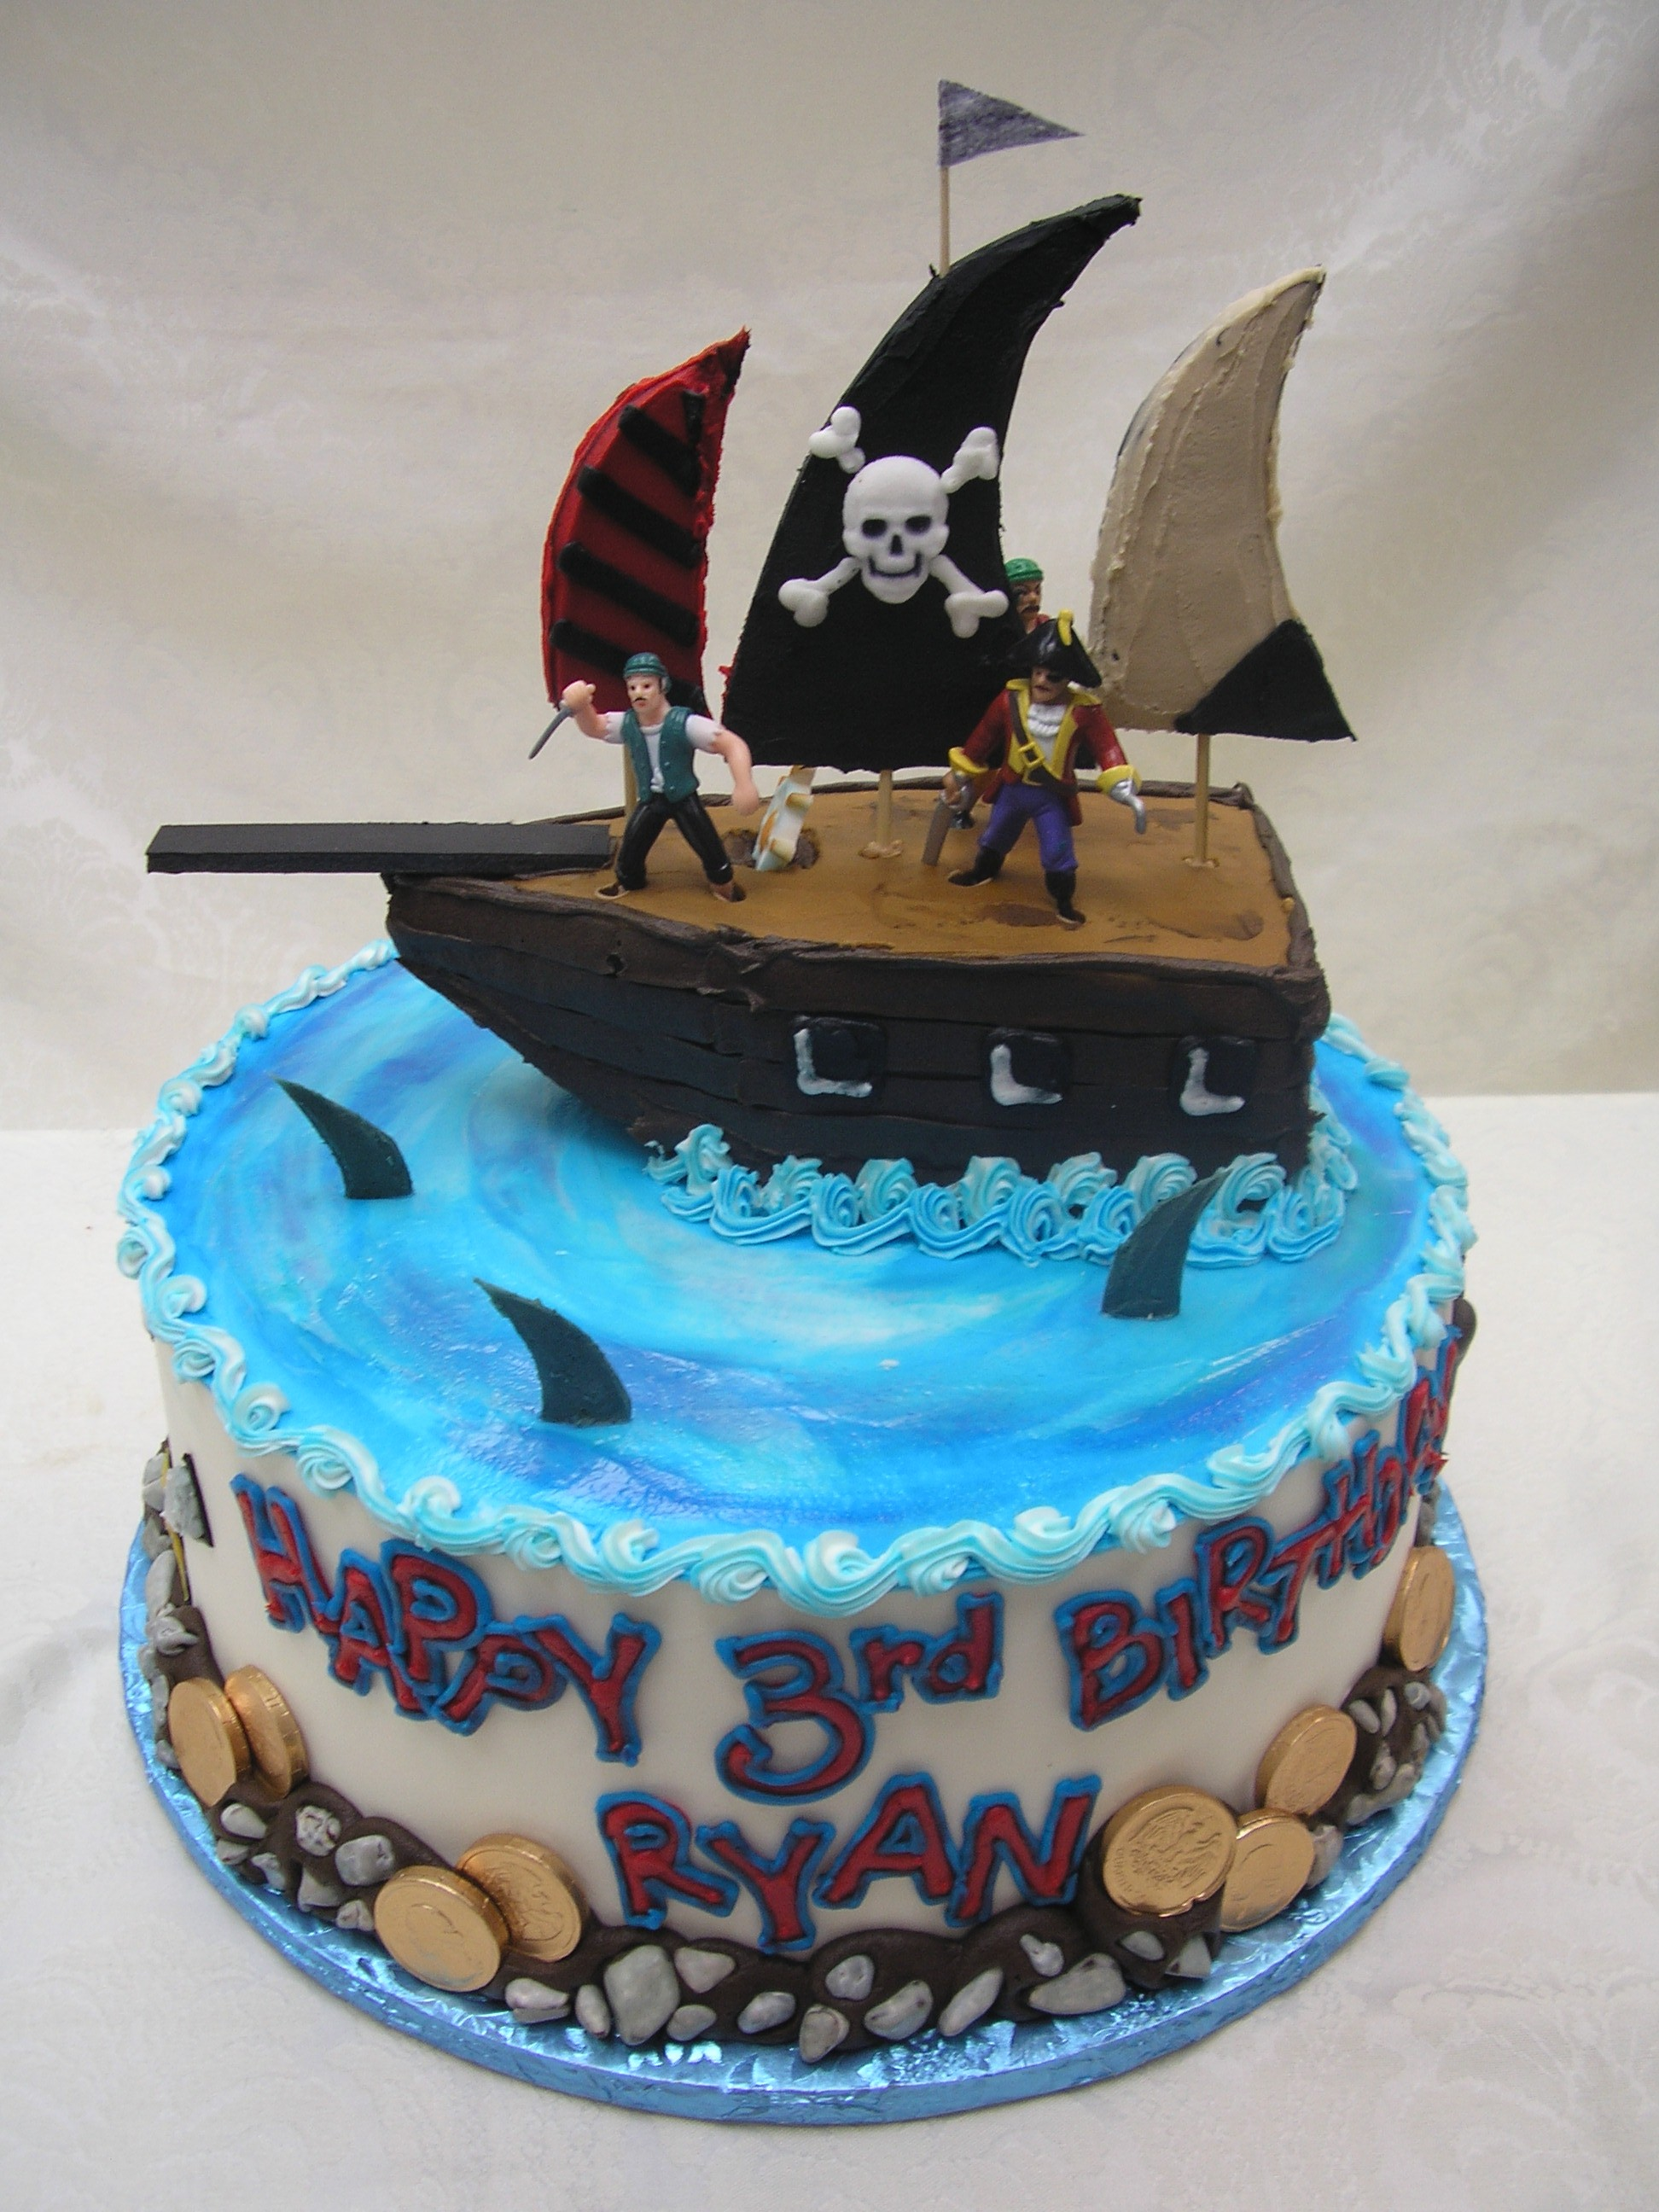 3D pirate ship on a cake